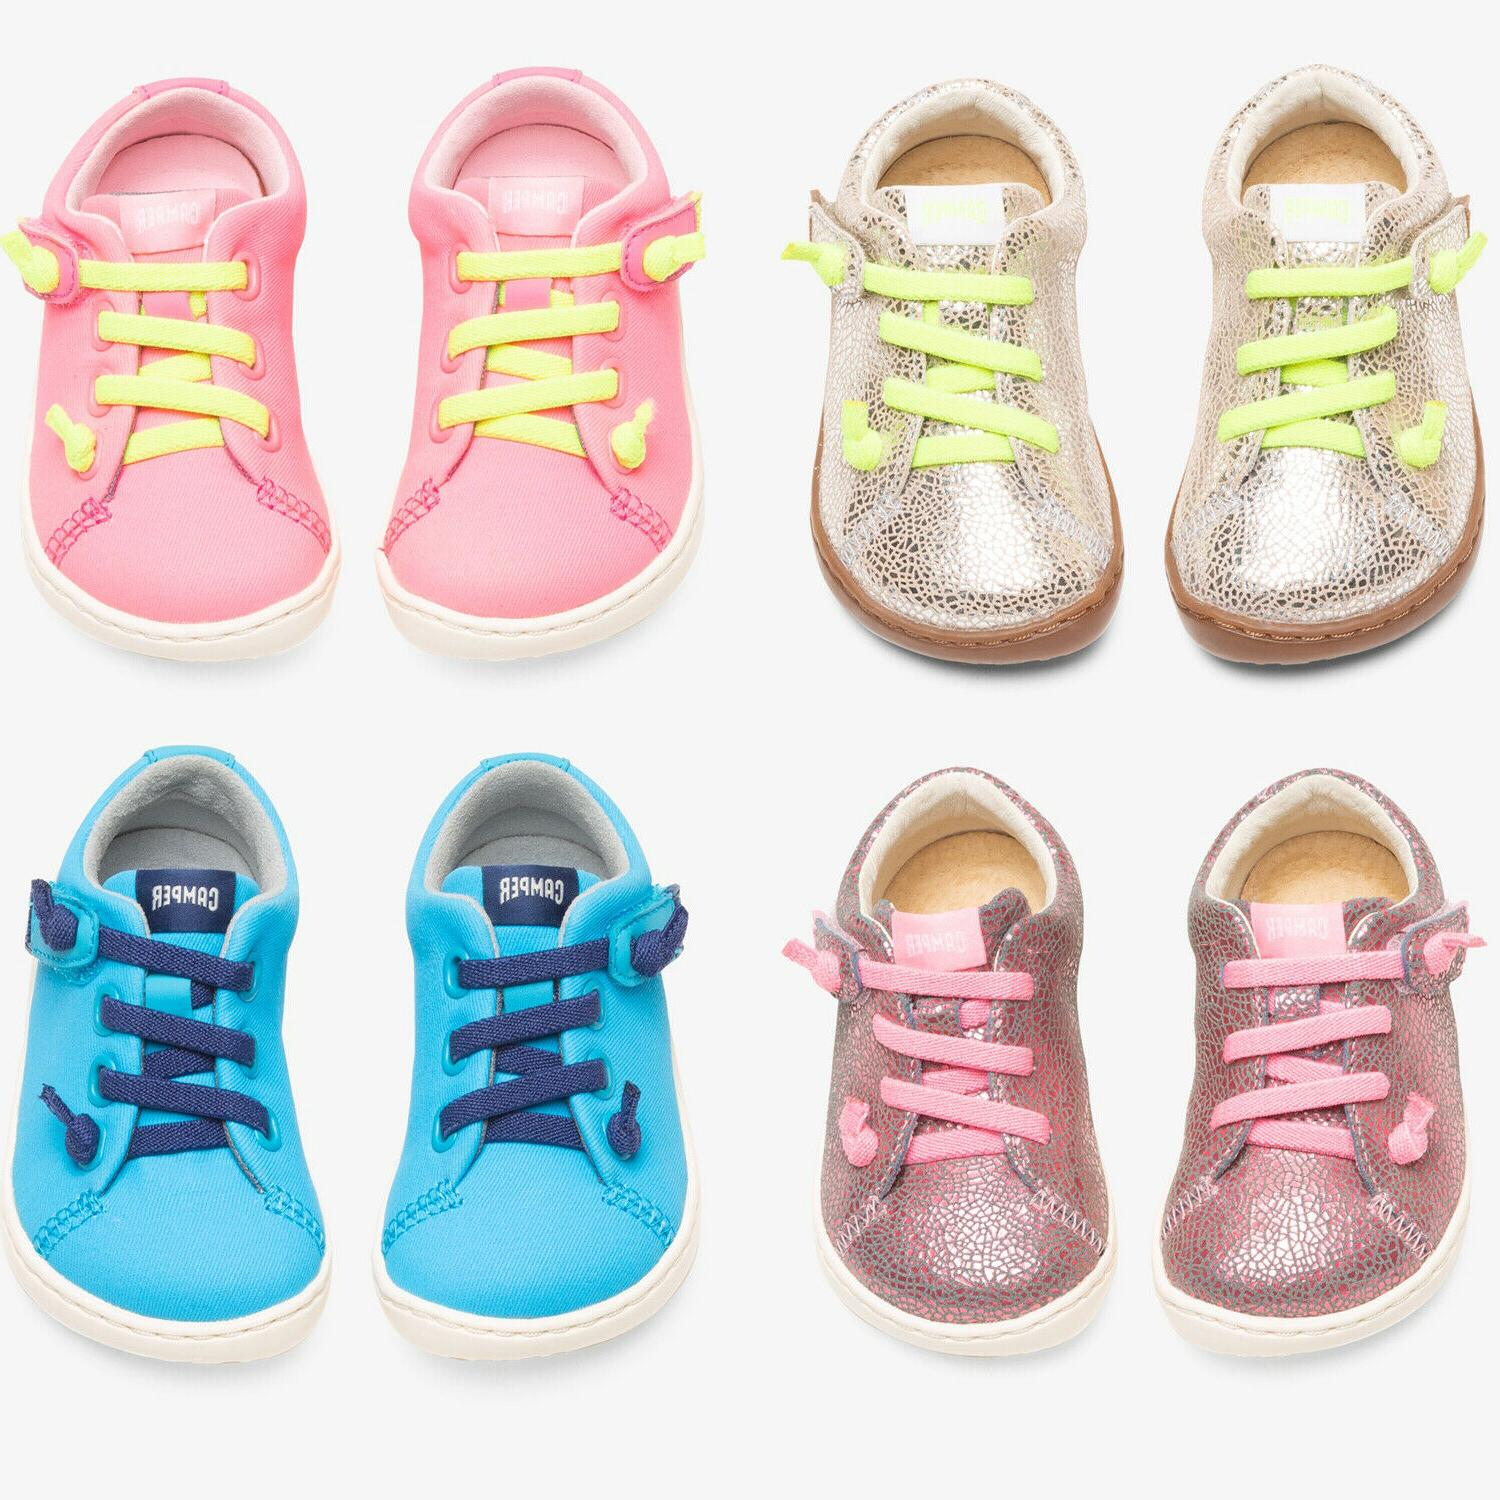 baby shoes peu sneakers first walker shoes